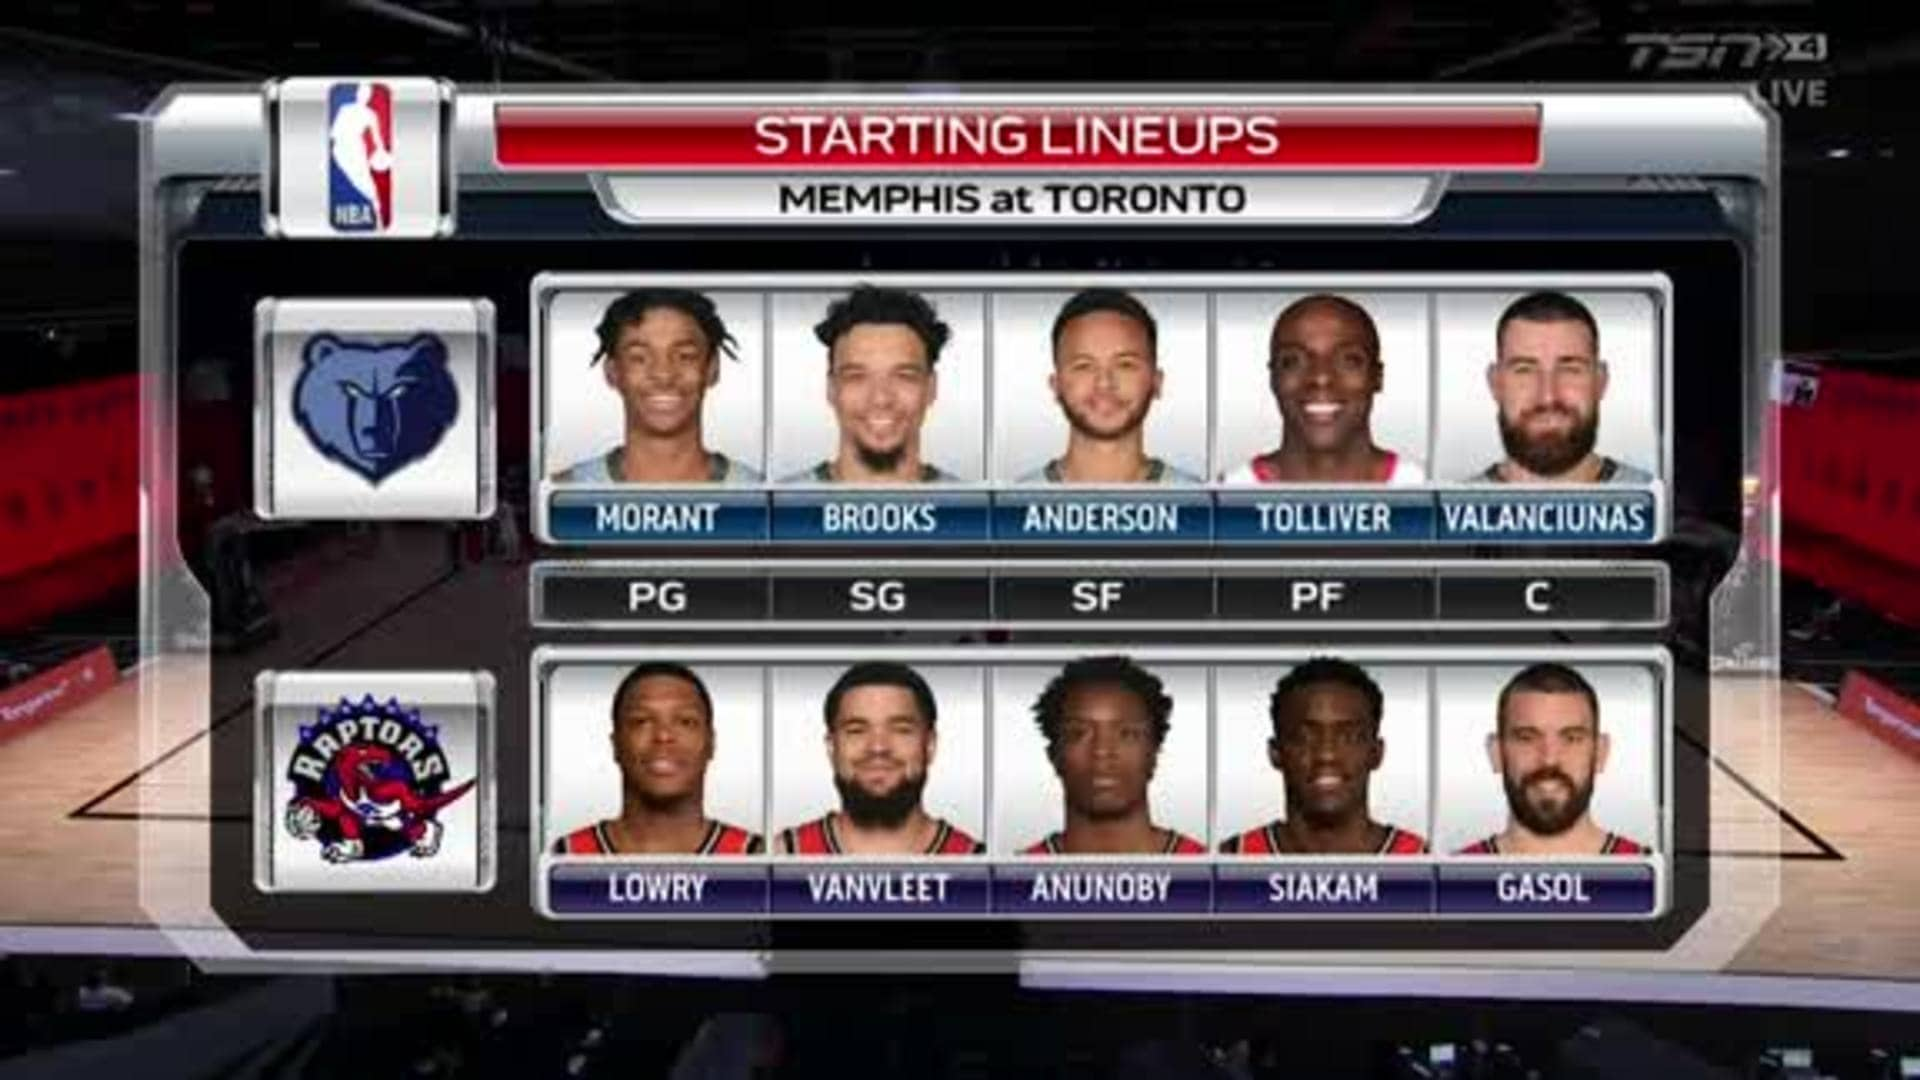 Game Highlights: Raptors vs Grizzlies - August 9, 2020